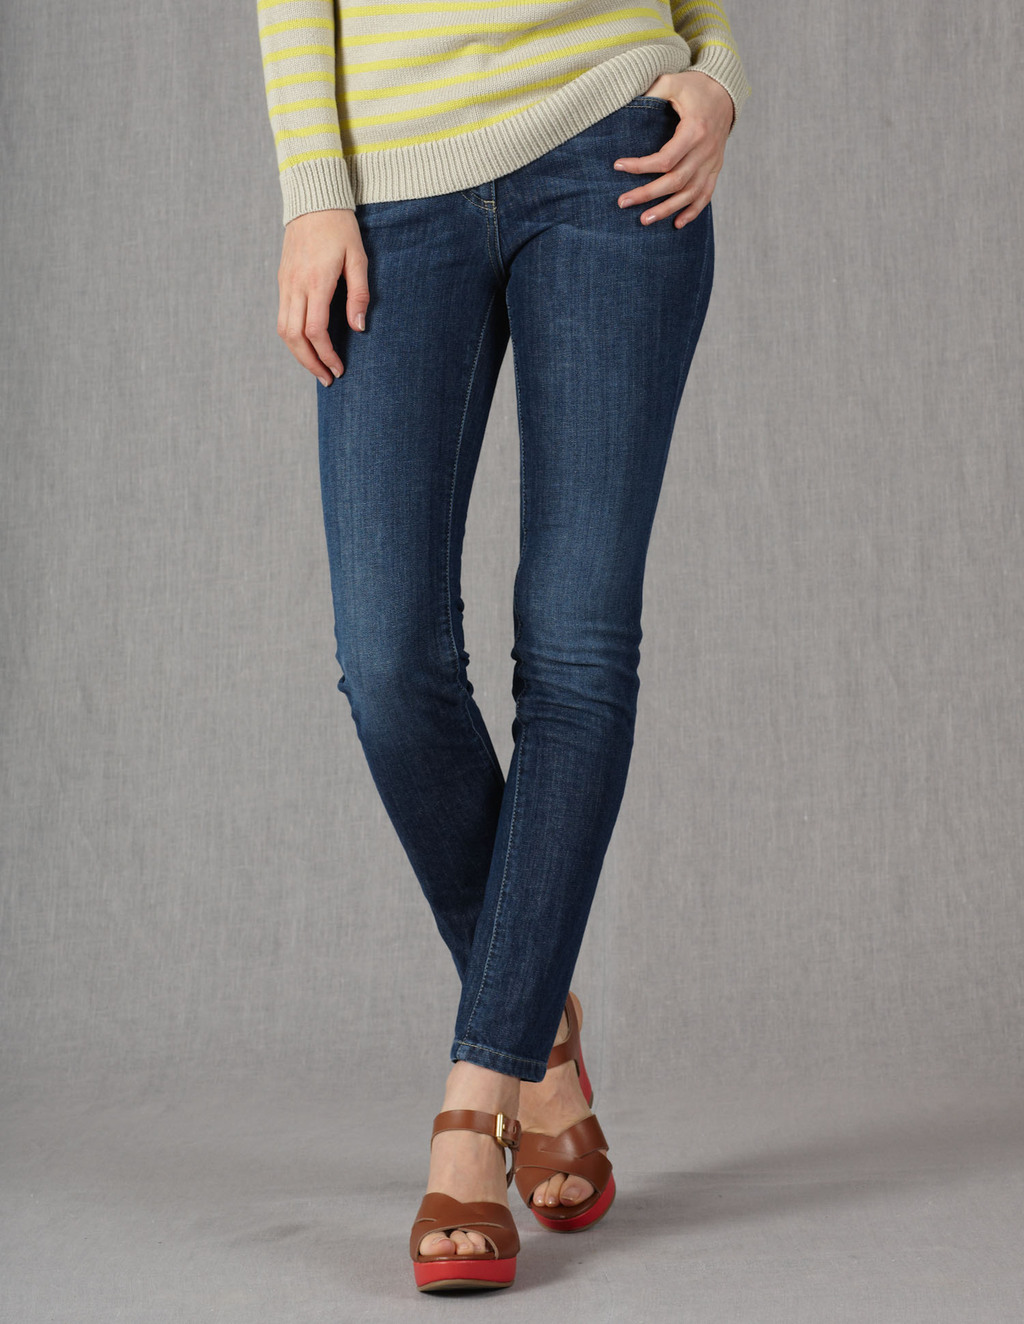 Skinny Ankle Skimmer Jeans - style: skinny leg; pattern: plain; pocket detail: traditional 5 pocket; waist: mid/regular rise; predominant colour: denim; occasions: casual; length: ankle length; fibres: cotton - stretch; texture group: denim; pattern type: fabric; season: s/s 2013